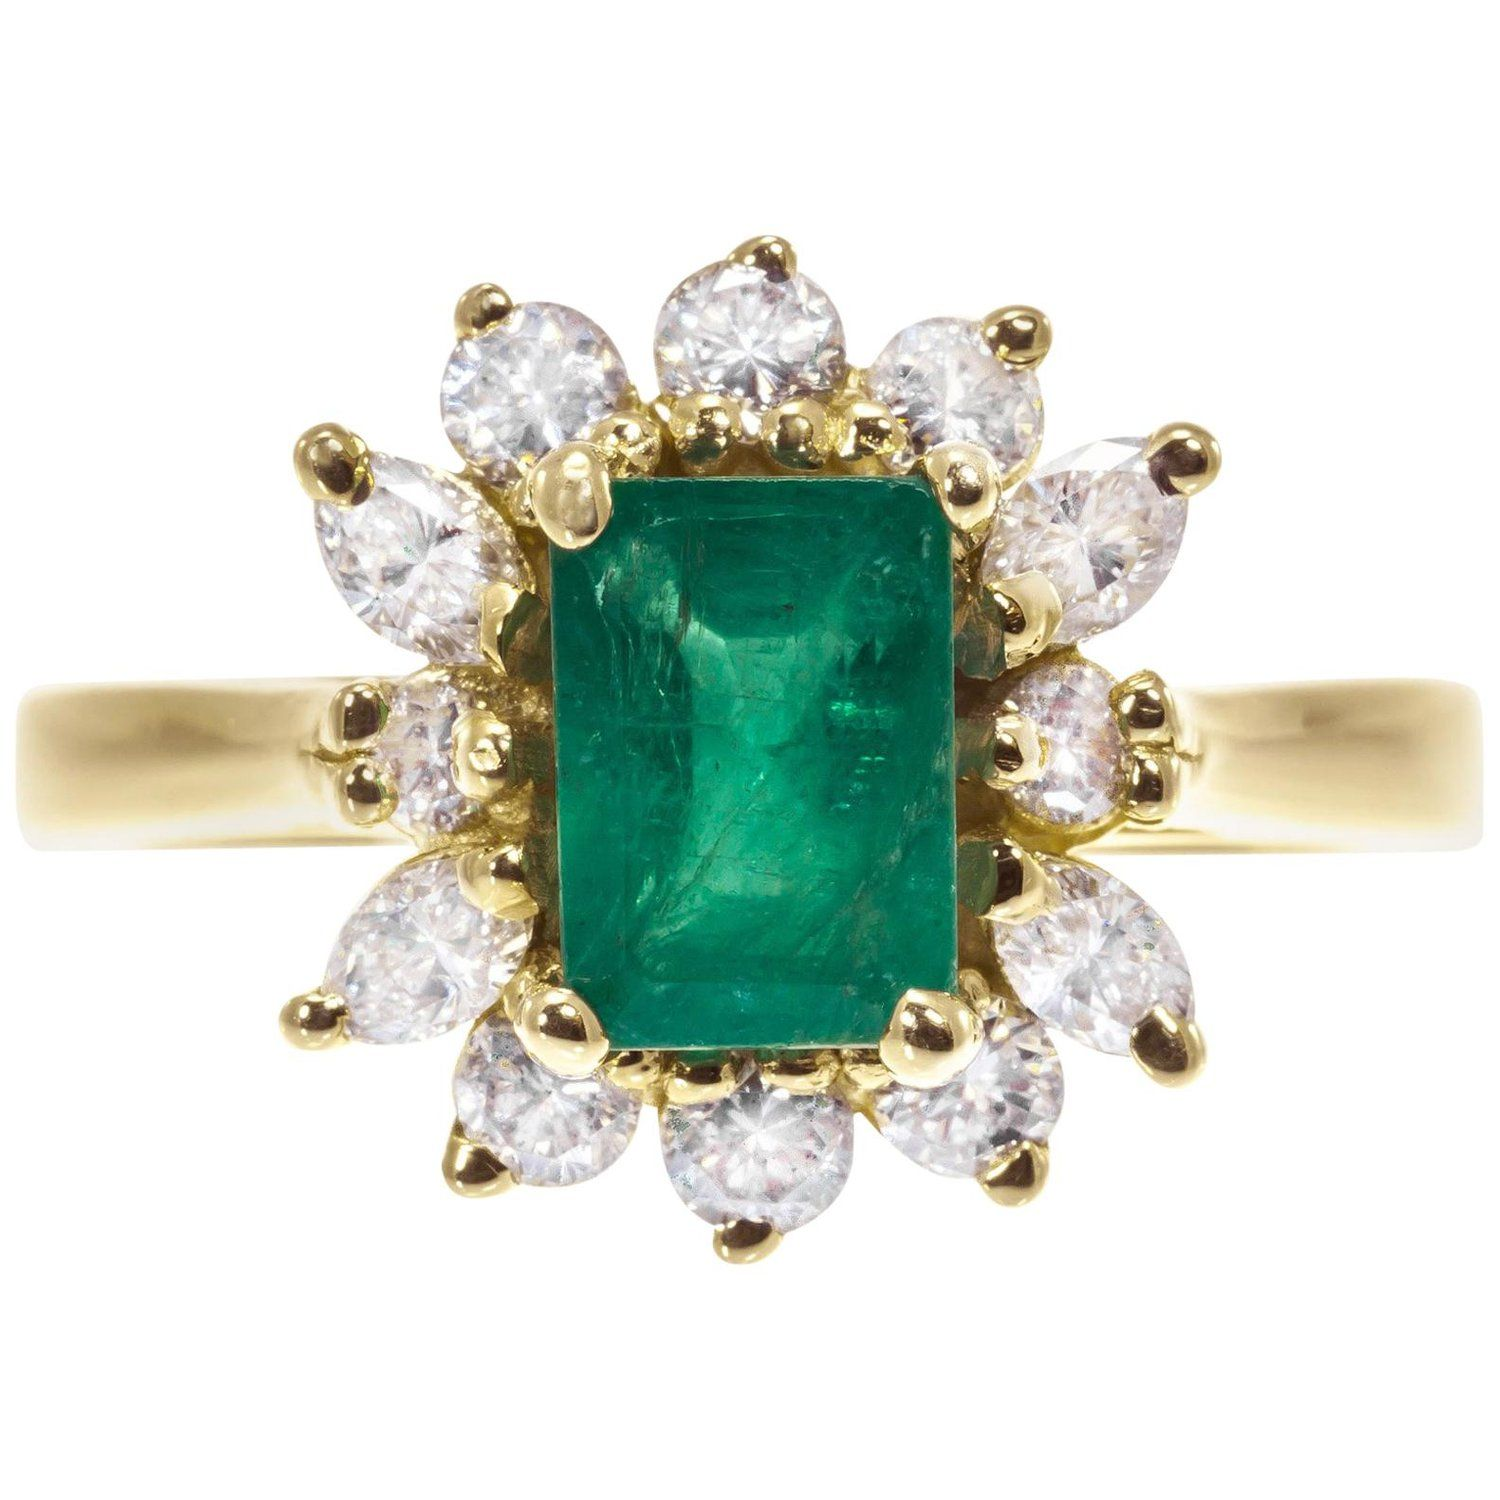 10+ Keith miller jewelry new orleans ideas in 2021